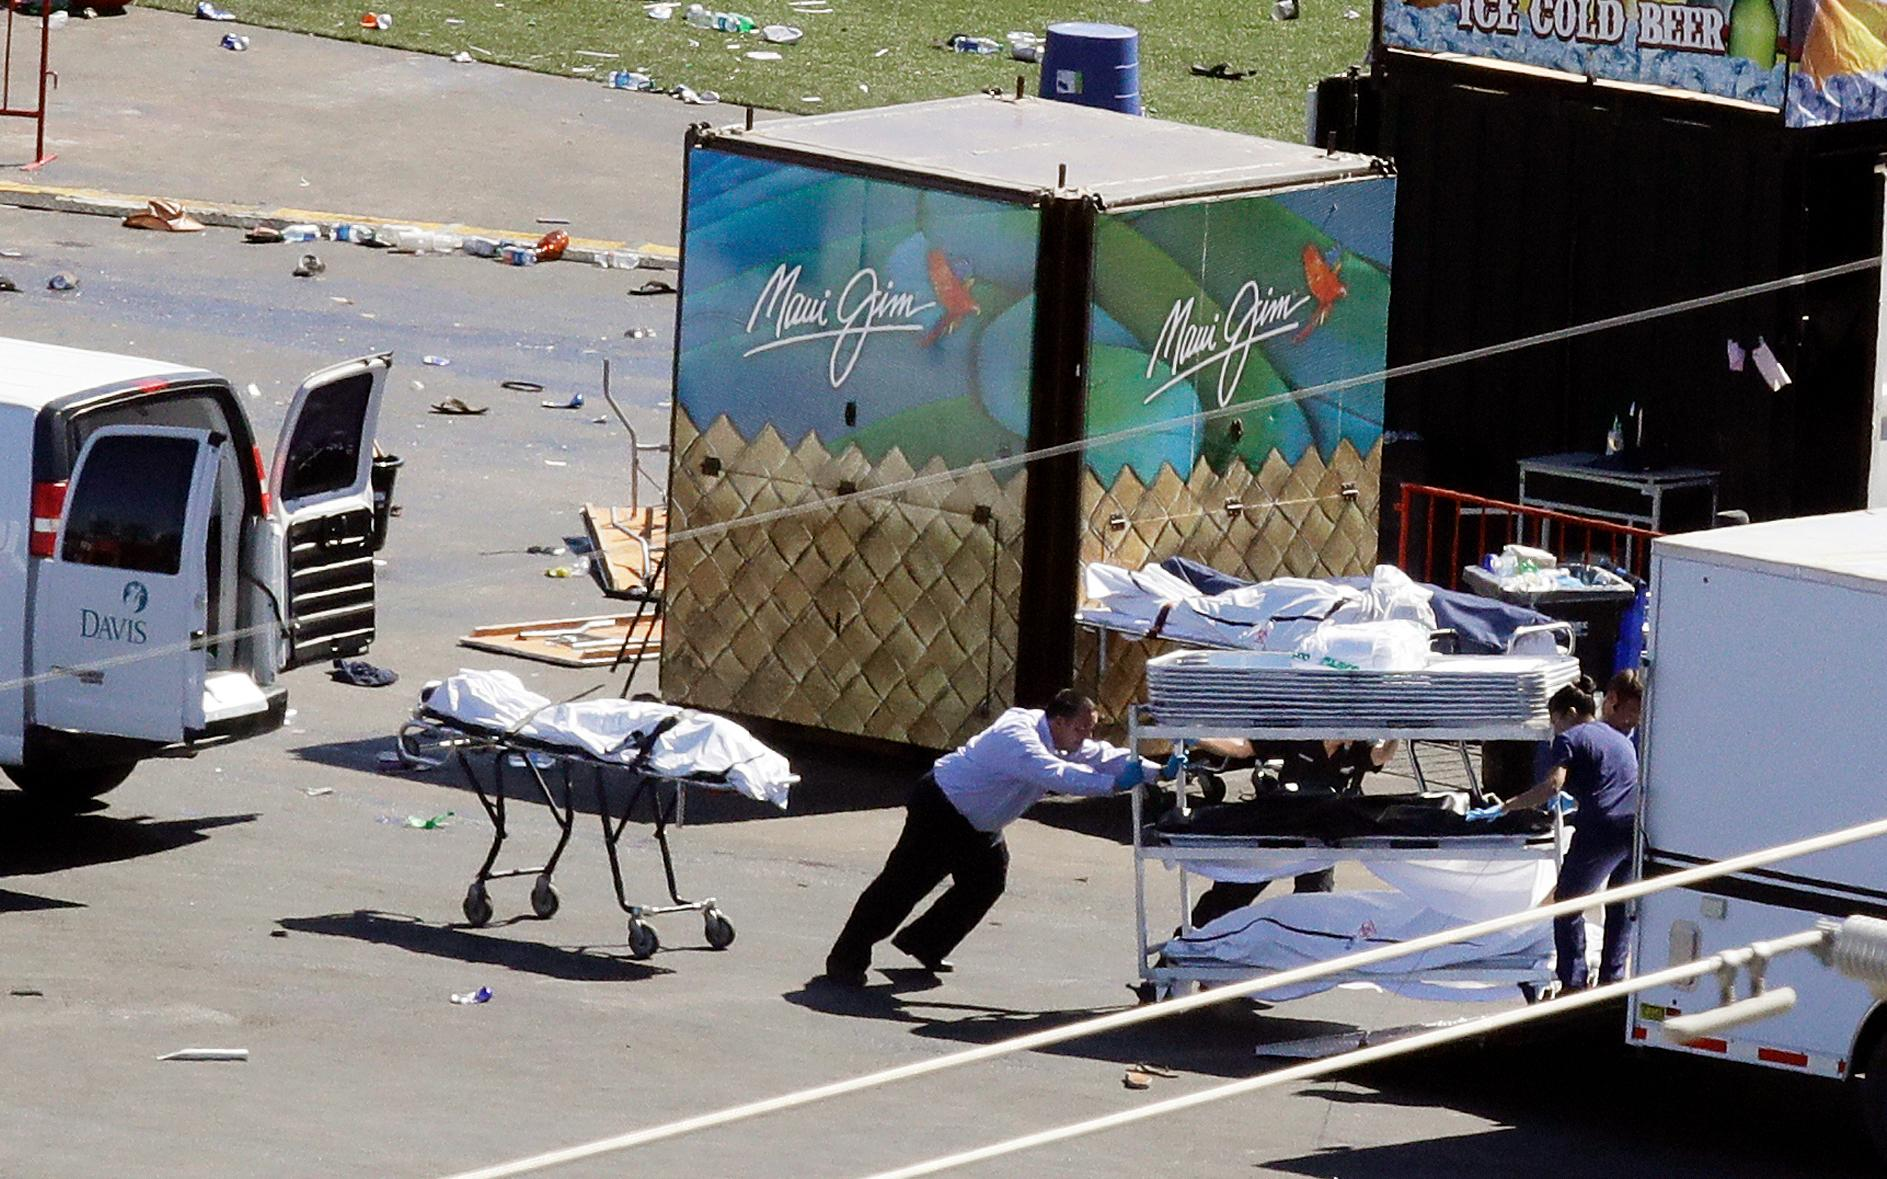 FILE--In this Oct. 2, 2017, file photo, investigators load bodies from the scene of a mass shooting at a music festival near the Mandalay Bay resort and casino on the Las Vegas Strip in Las Vegas. Two Nevada judges in Las Vegas have ordered the release of search warrant records and autopsy reports related to the deadliest mass shooting in modern U.S. history, with some information redacted.(AP Photo/Chris Carlson, file)